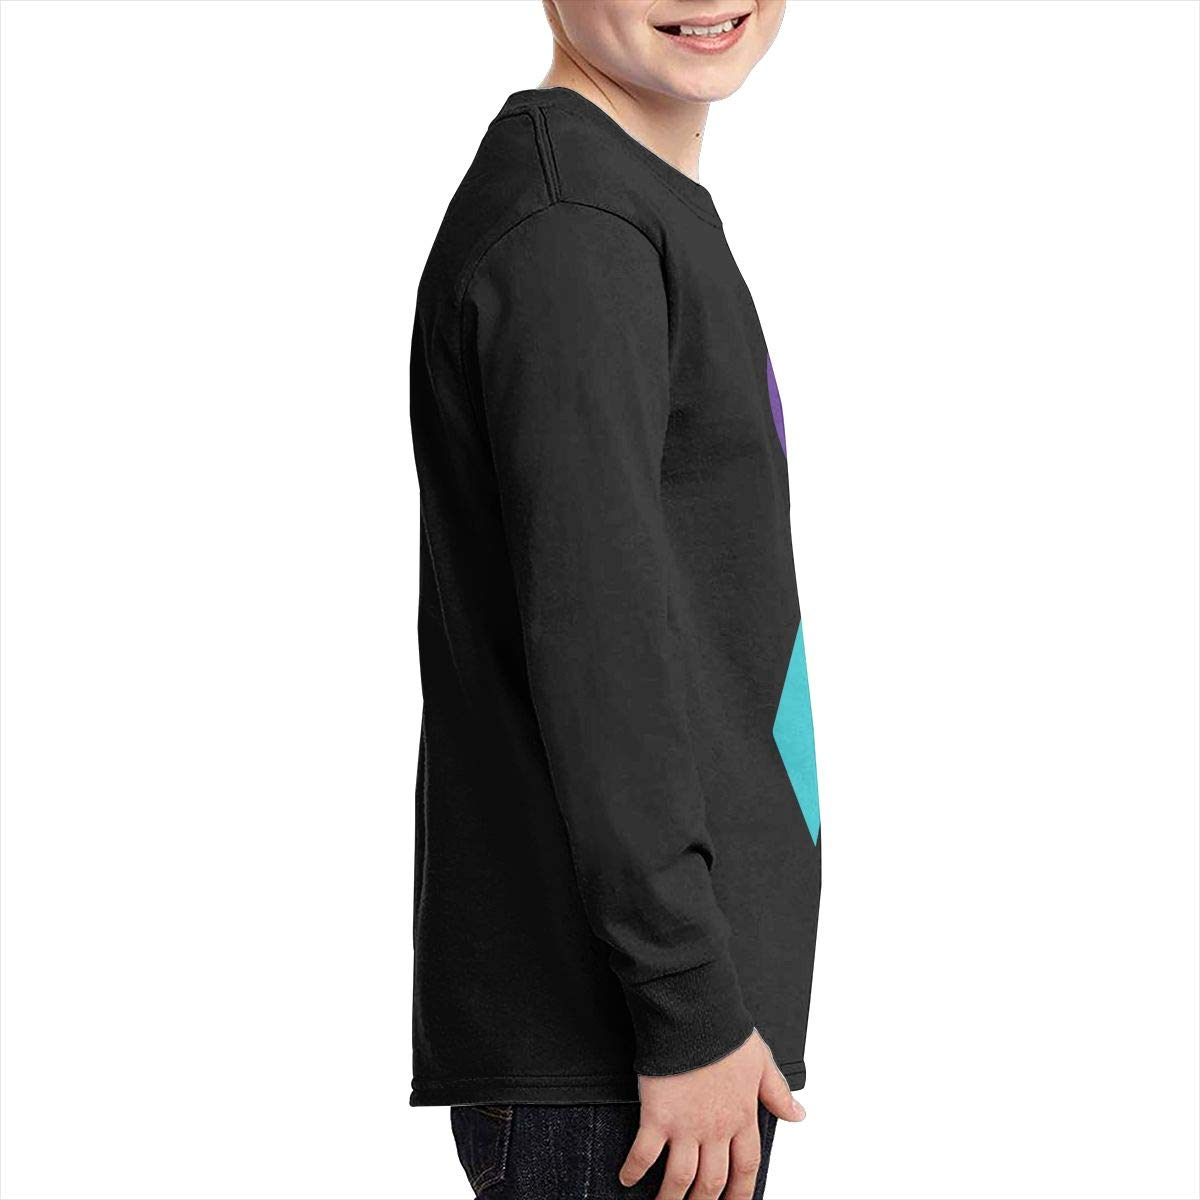 Teenagers Teen Boy Suicide Prevention Awareness Ribbon Printed Long Sleeve 100/% Cotton Tops